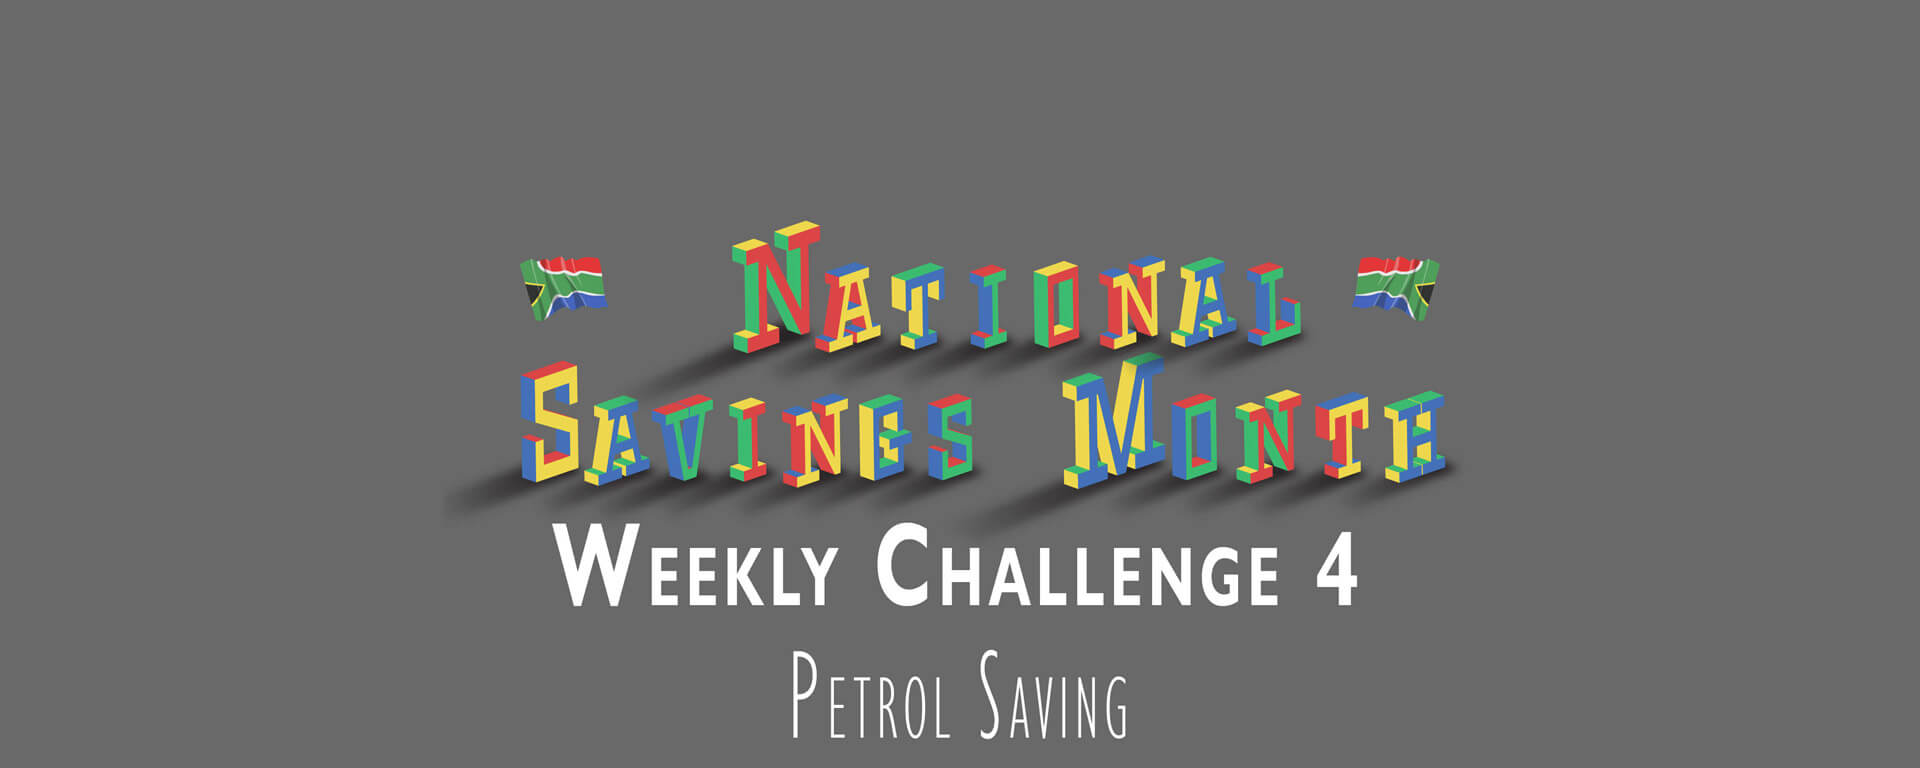 National Saving Month: Weekly Challenge 4